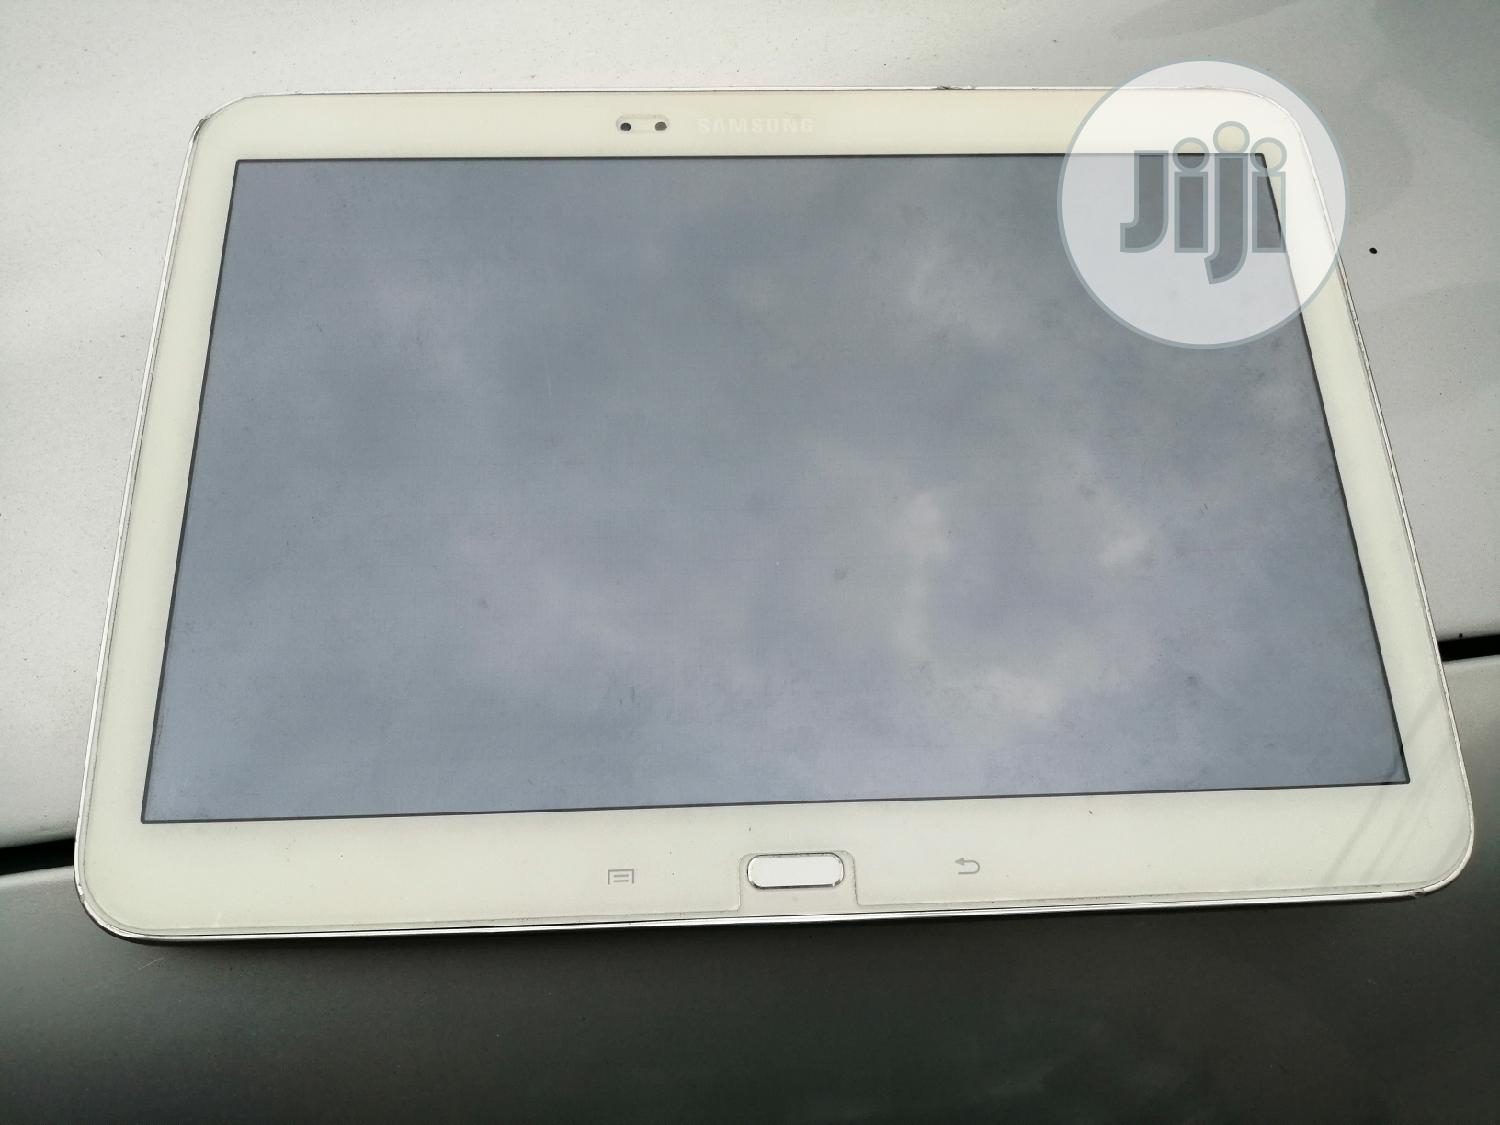 Samsung Galaxy Tab 3 7.0 16 GB White | Tablets for sale in Ikeja, Lagos State, Nigeria